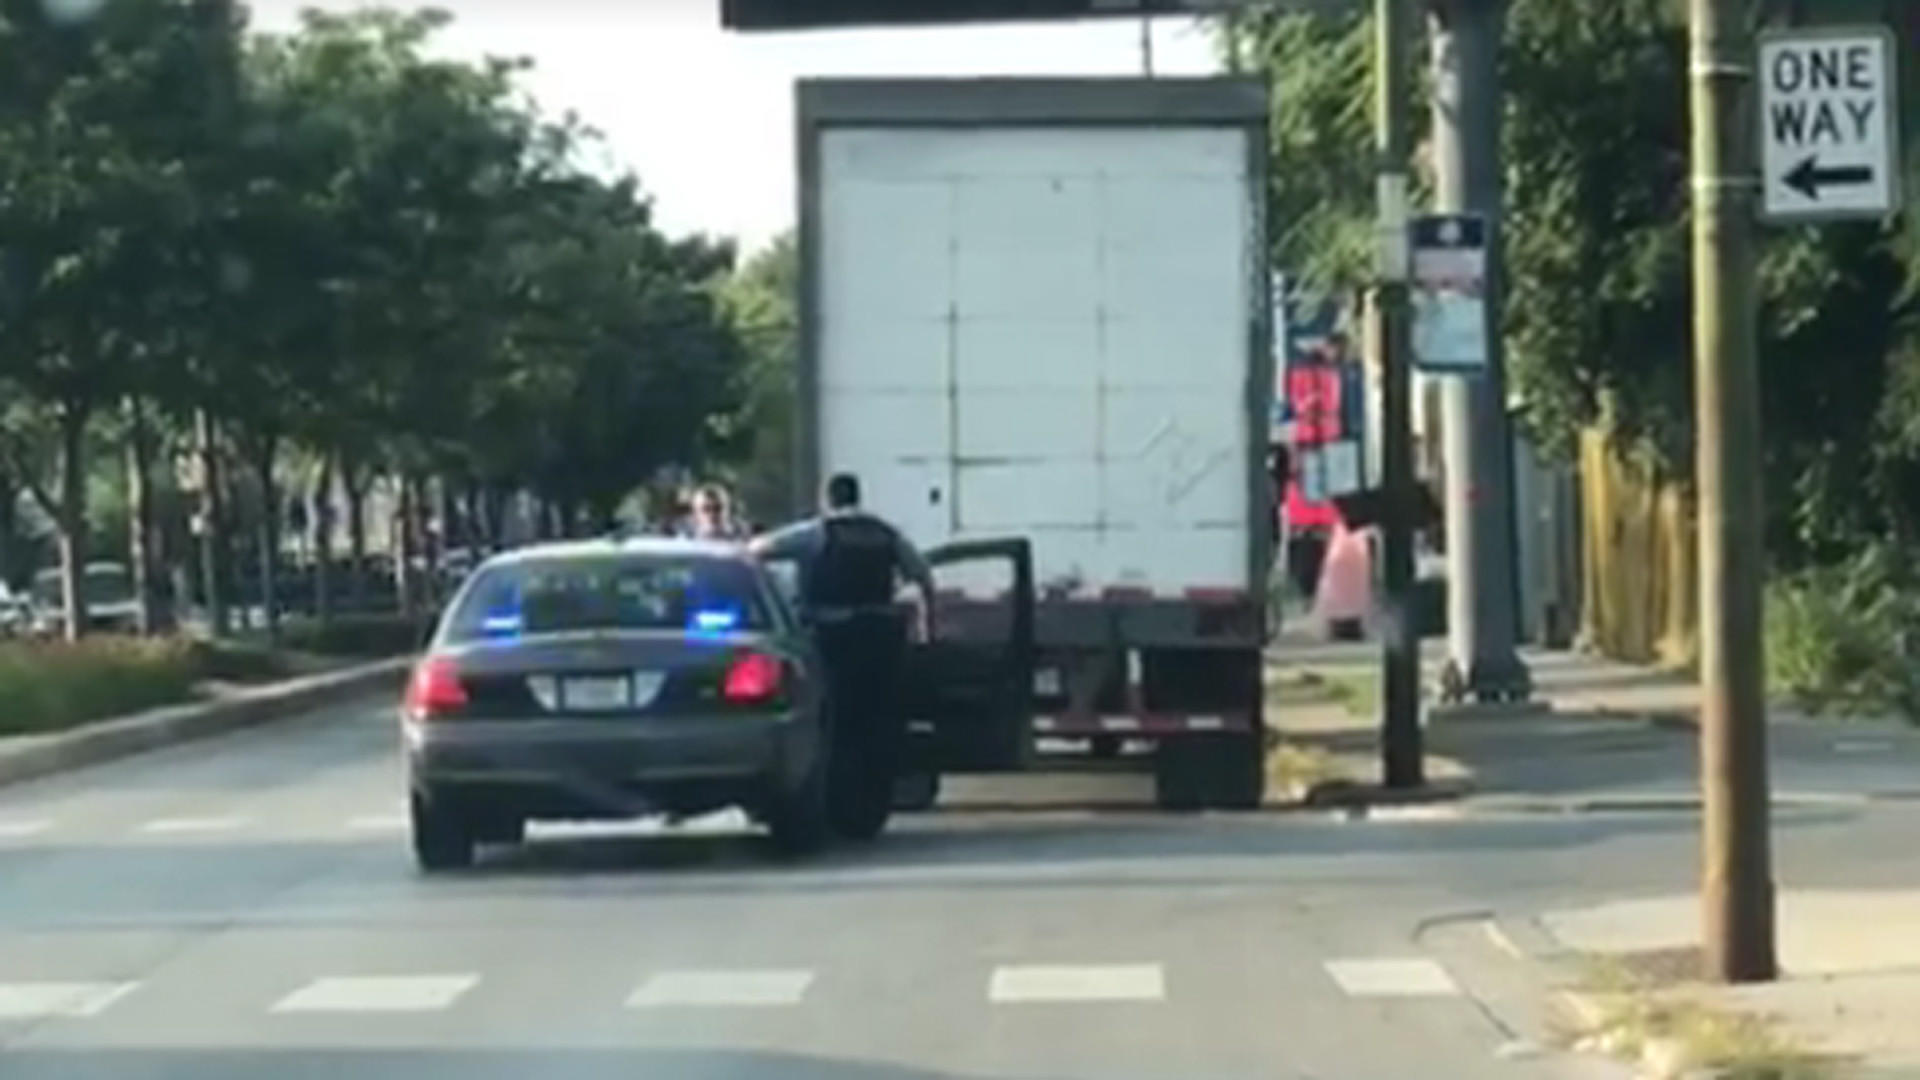 Chicago And Railroad Police Use Of Bait Truck Caught On Viral - Bait car show